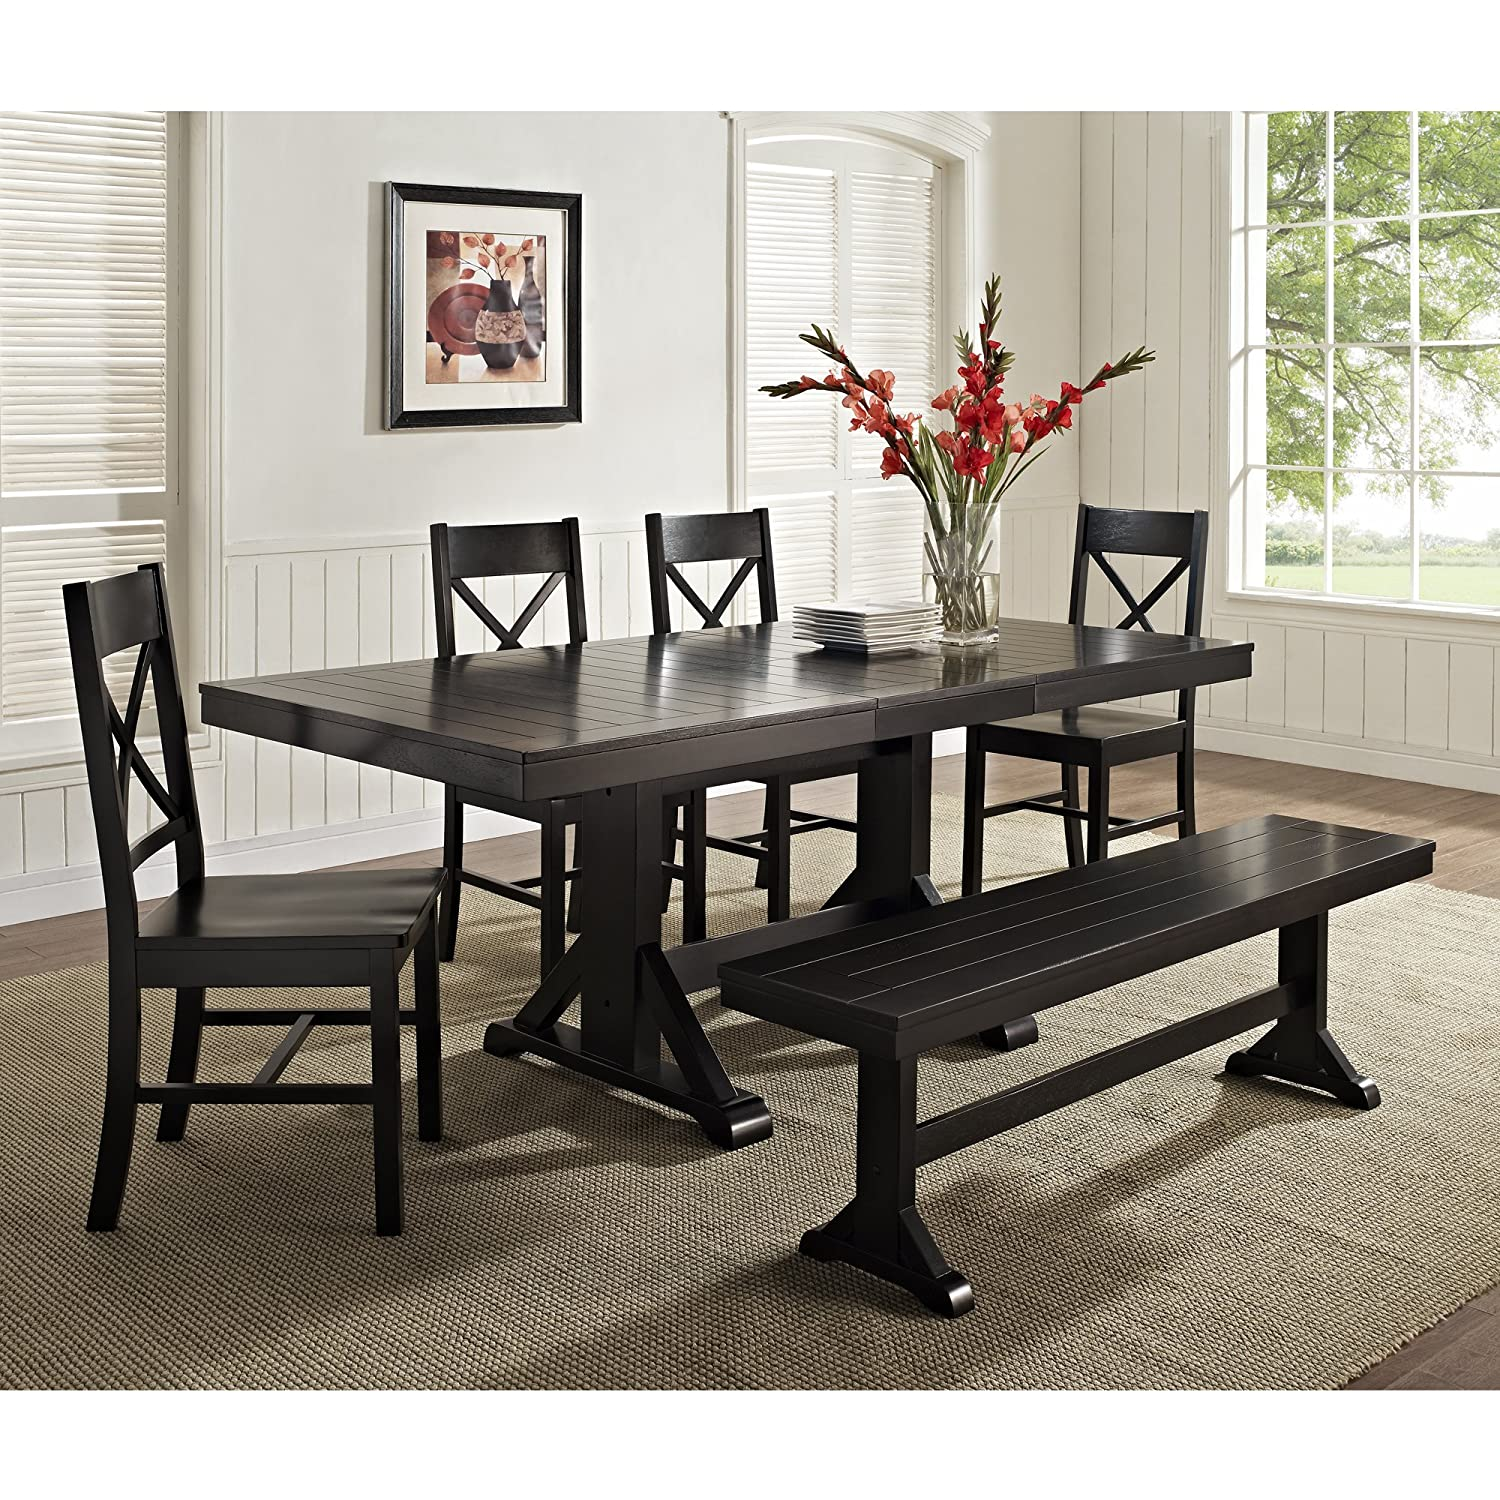 black and wood dining set